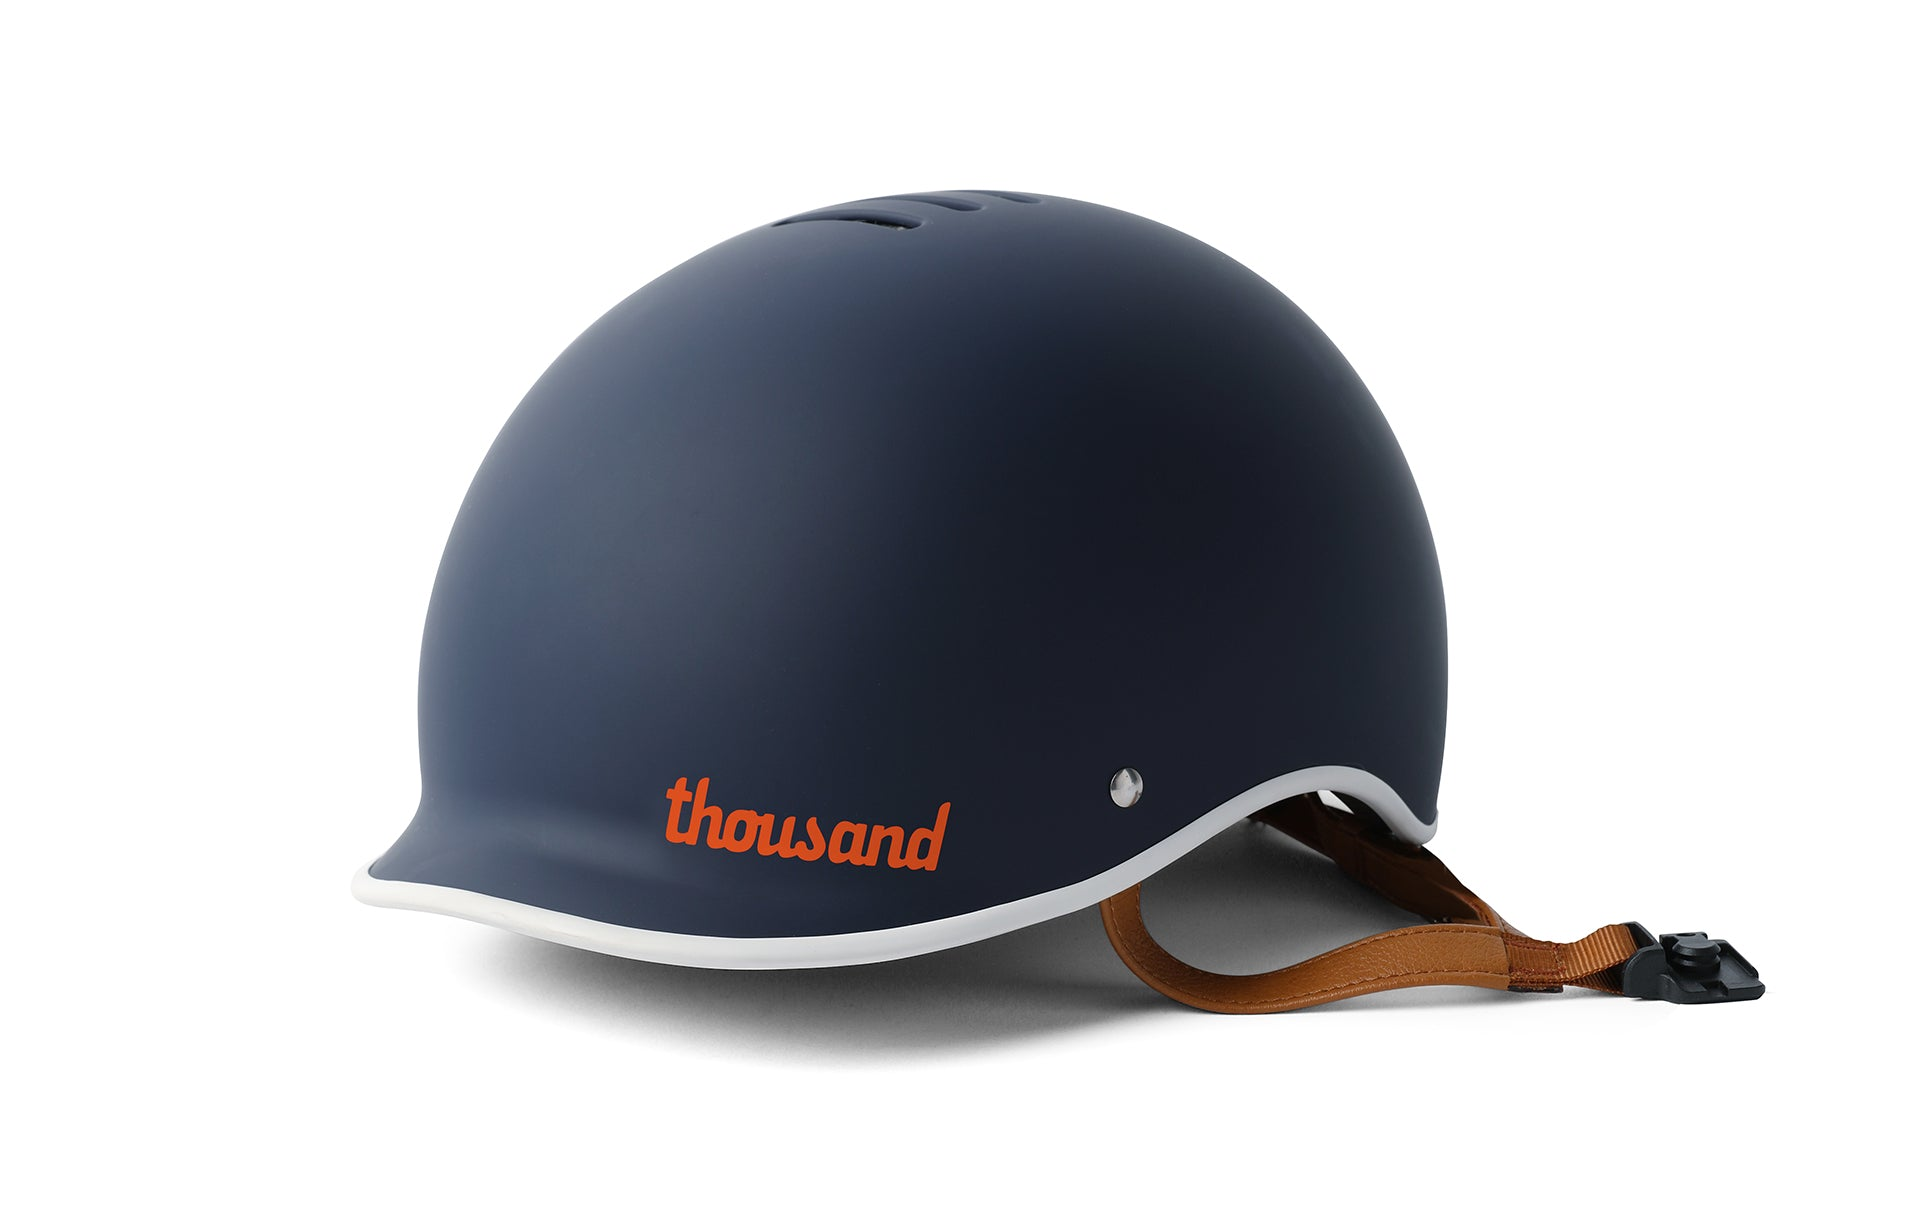 Bike Helmet Stylish Bicycle Helmet Thousand